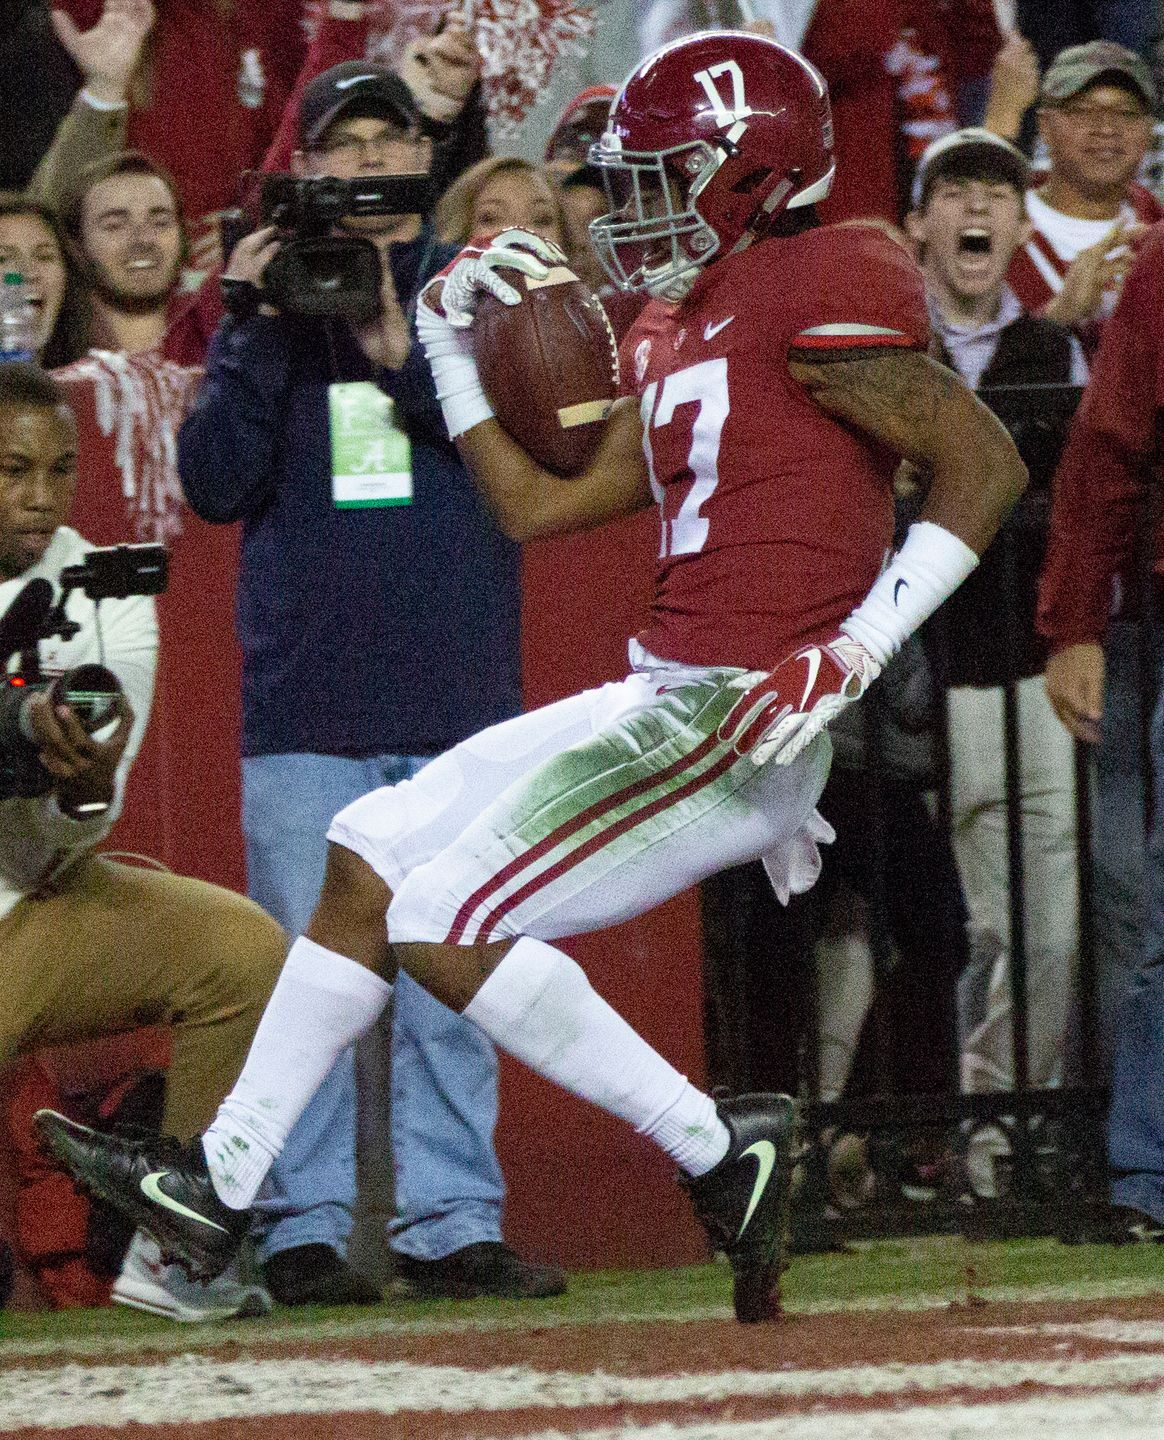 Alabama S Jaylen Waddle Poses After Scoring A Touchdown For The Tide In The Fourth Quarter Alabama Crimson Tide Football Crimson Tide Football Alabama